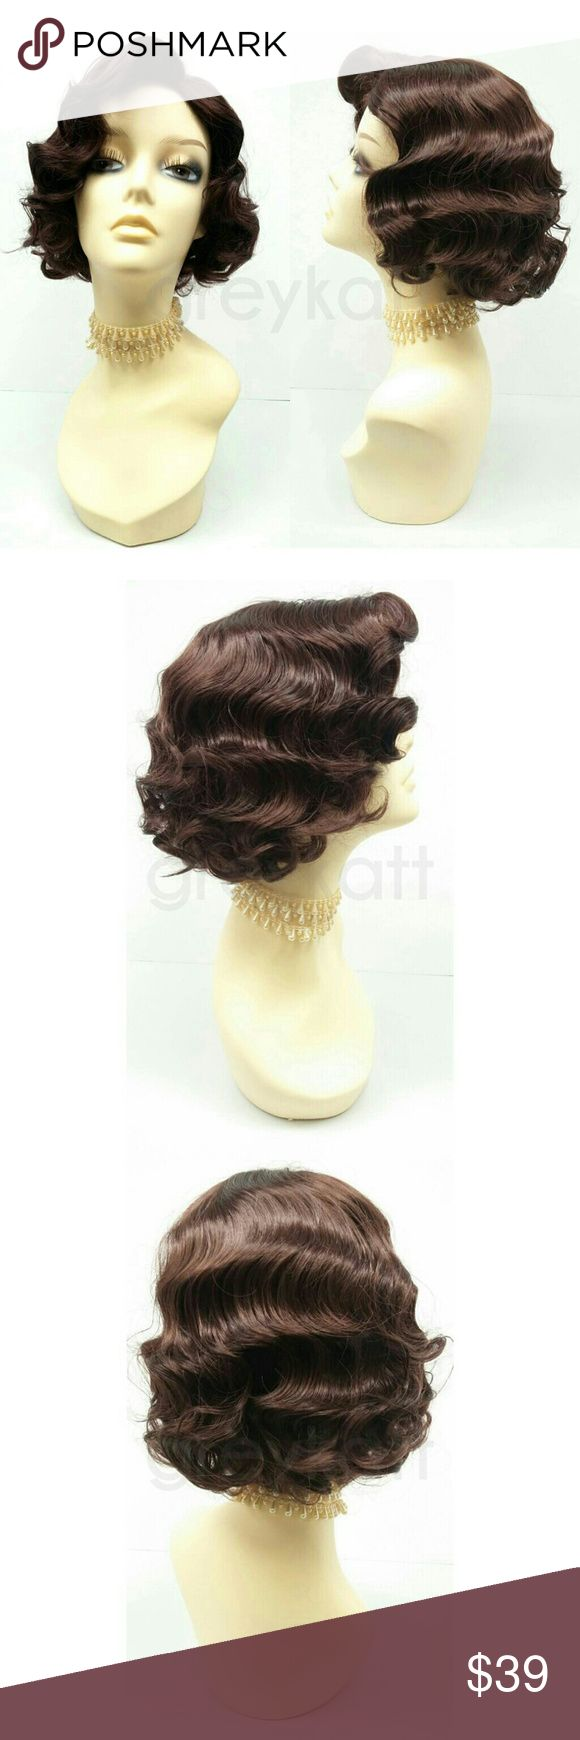 """Dark auburn finger waves Gatsby flapper 1920s wig NOTE: This wig is ready to wear and intended for costume purposes only. Do not brush, comb, shake out, or run fingers through the hair as it will separate the waves.  Retro finger waves and curls in a chic short style. Synthetic. *Not heat resistant, do not use heating tools.  Color: Dark Auburn (33) Circumference: Adjustable 21"""" - 22"""" inches Materials: Synthetic fibers  Wig prices are firm. Accessories Hair Accessories"""